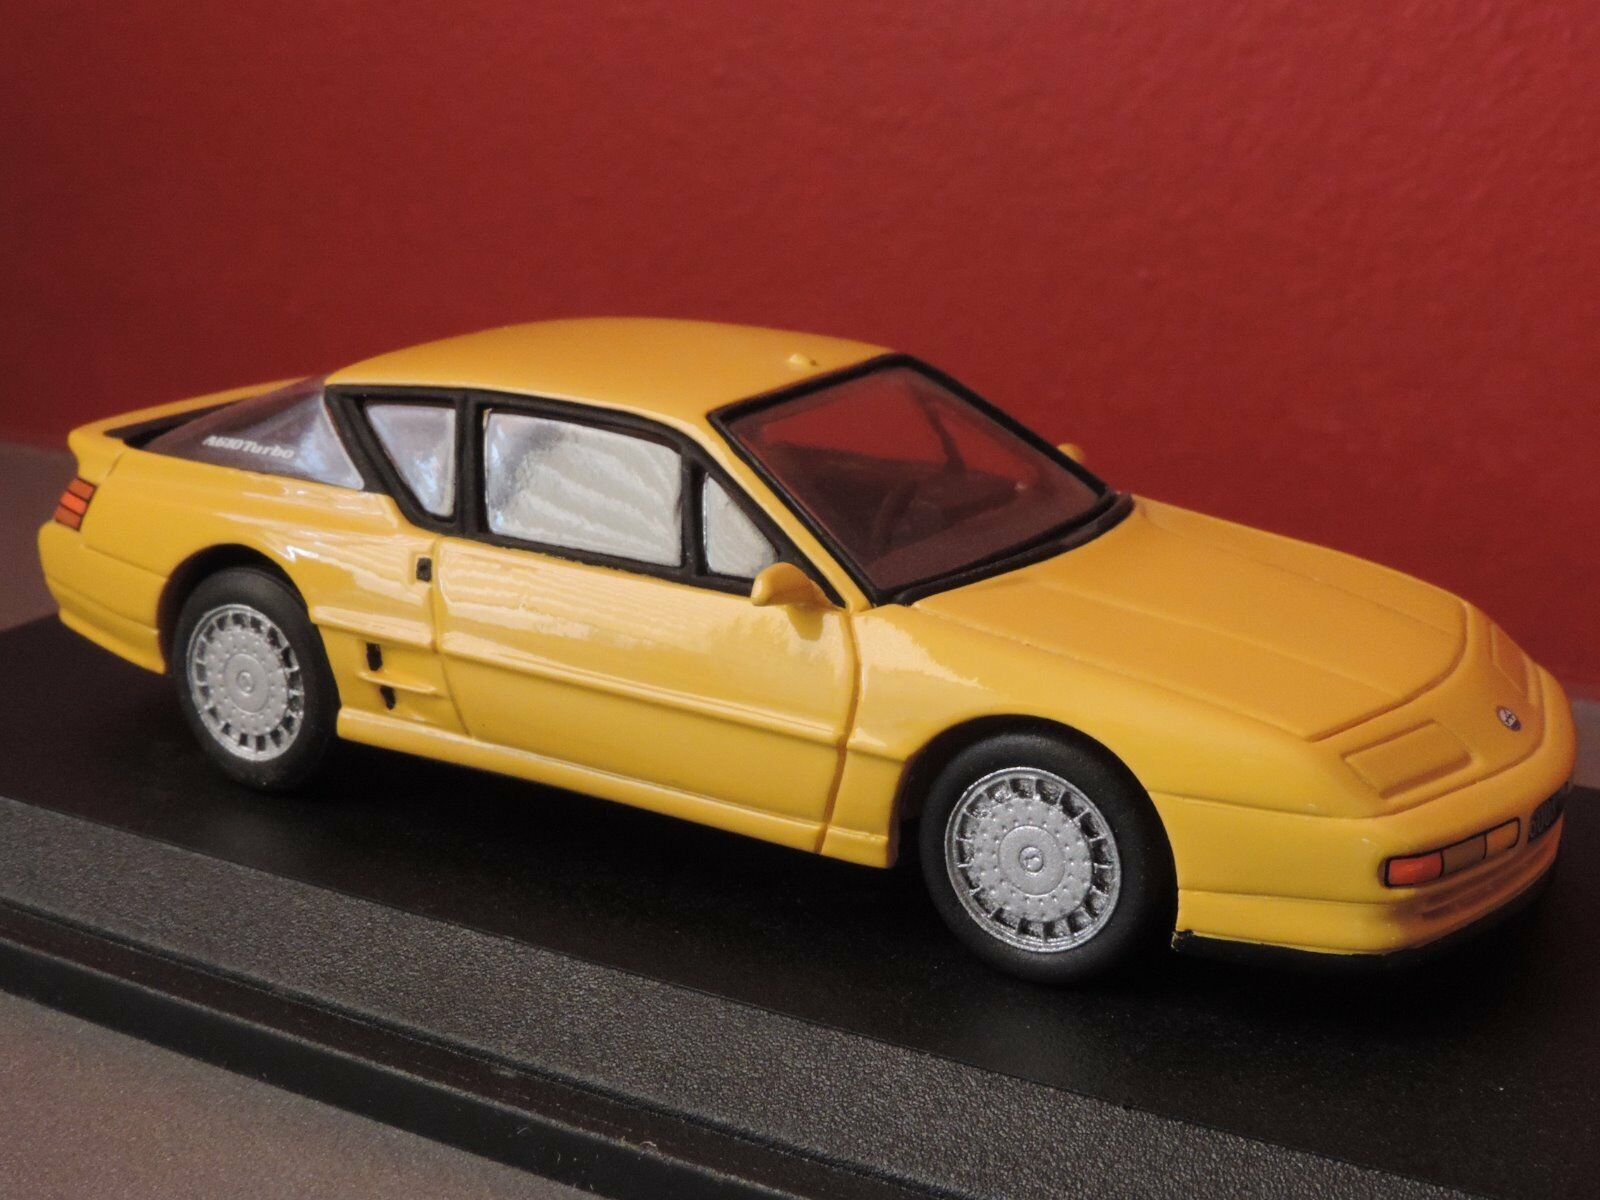 Voiture miniature Renault Alpine A610 fabricant GTS 1 43